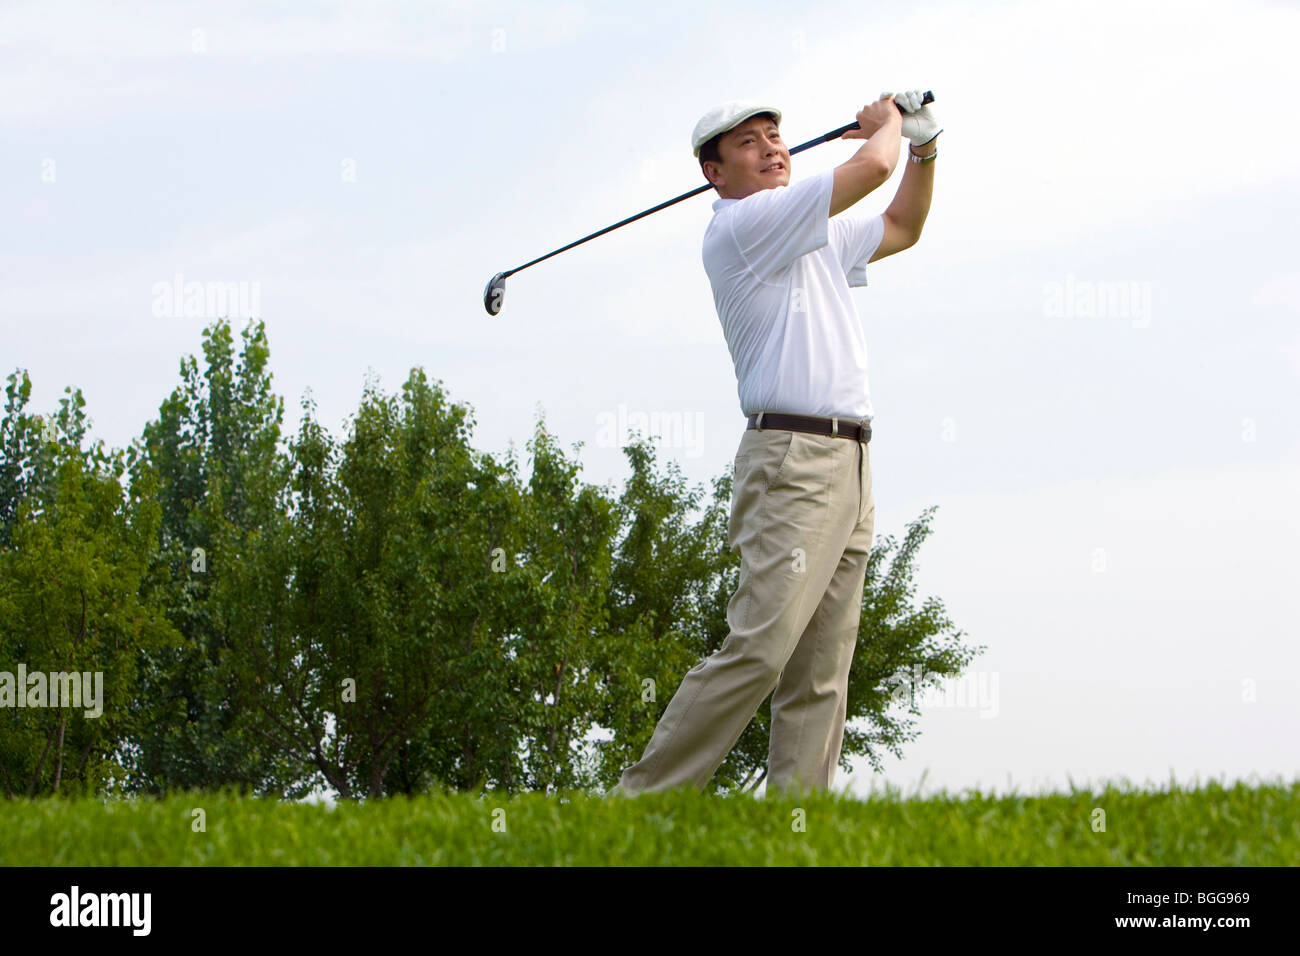 Side View of Golfer's Swing - Stock Image